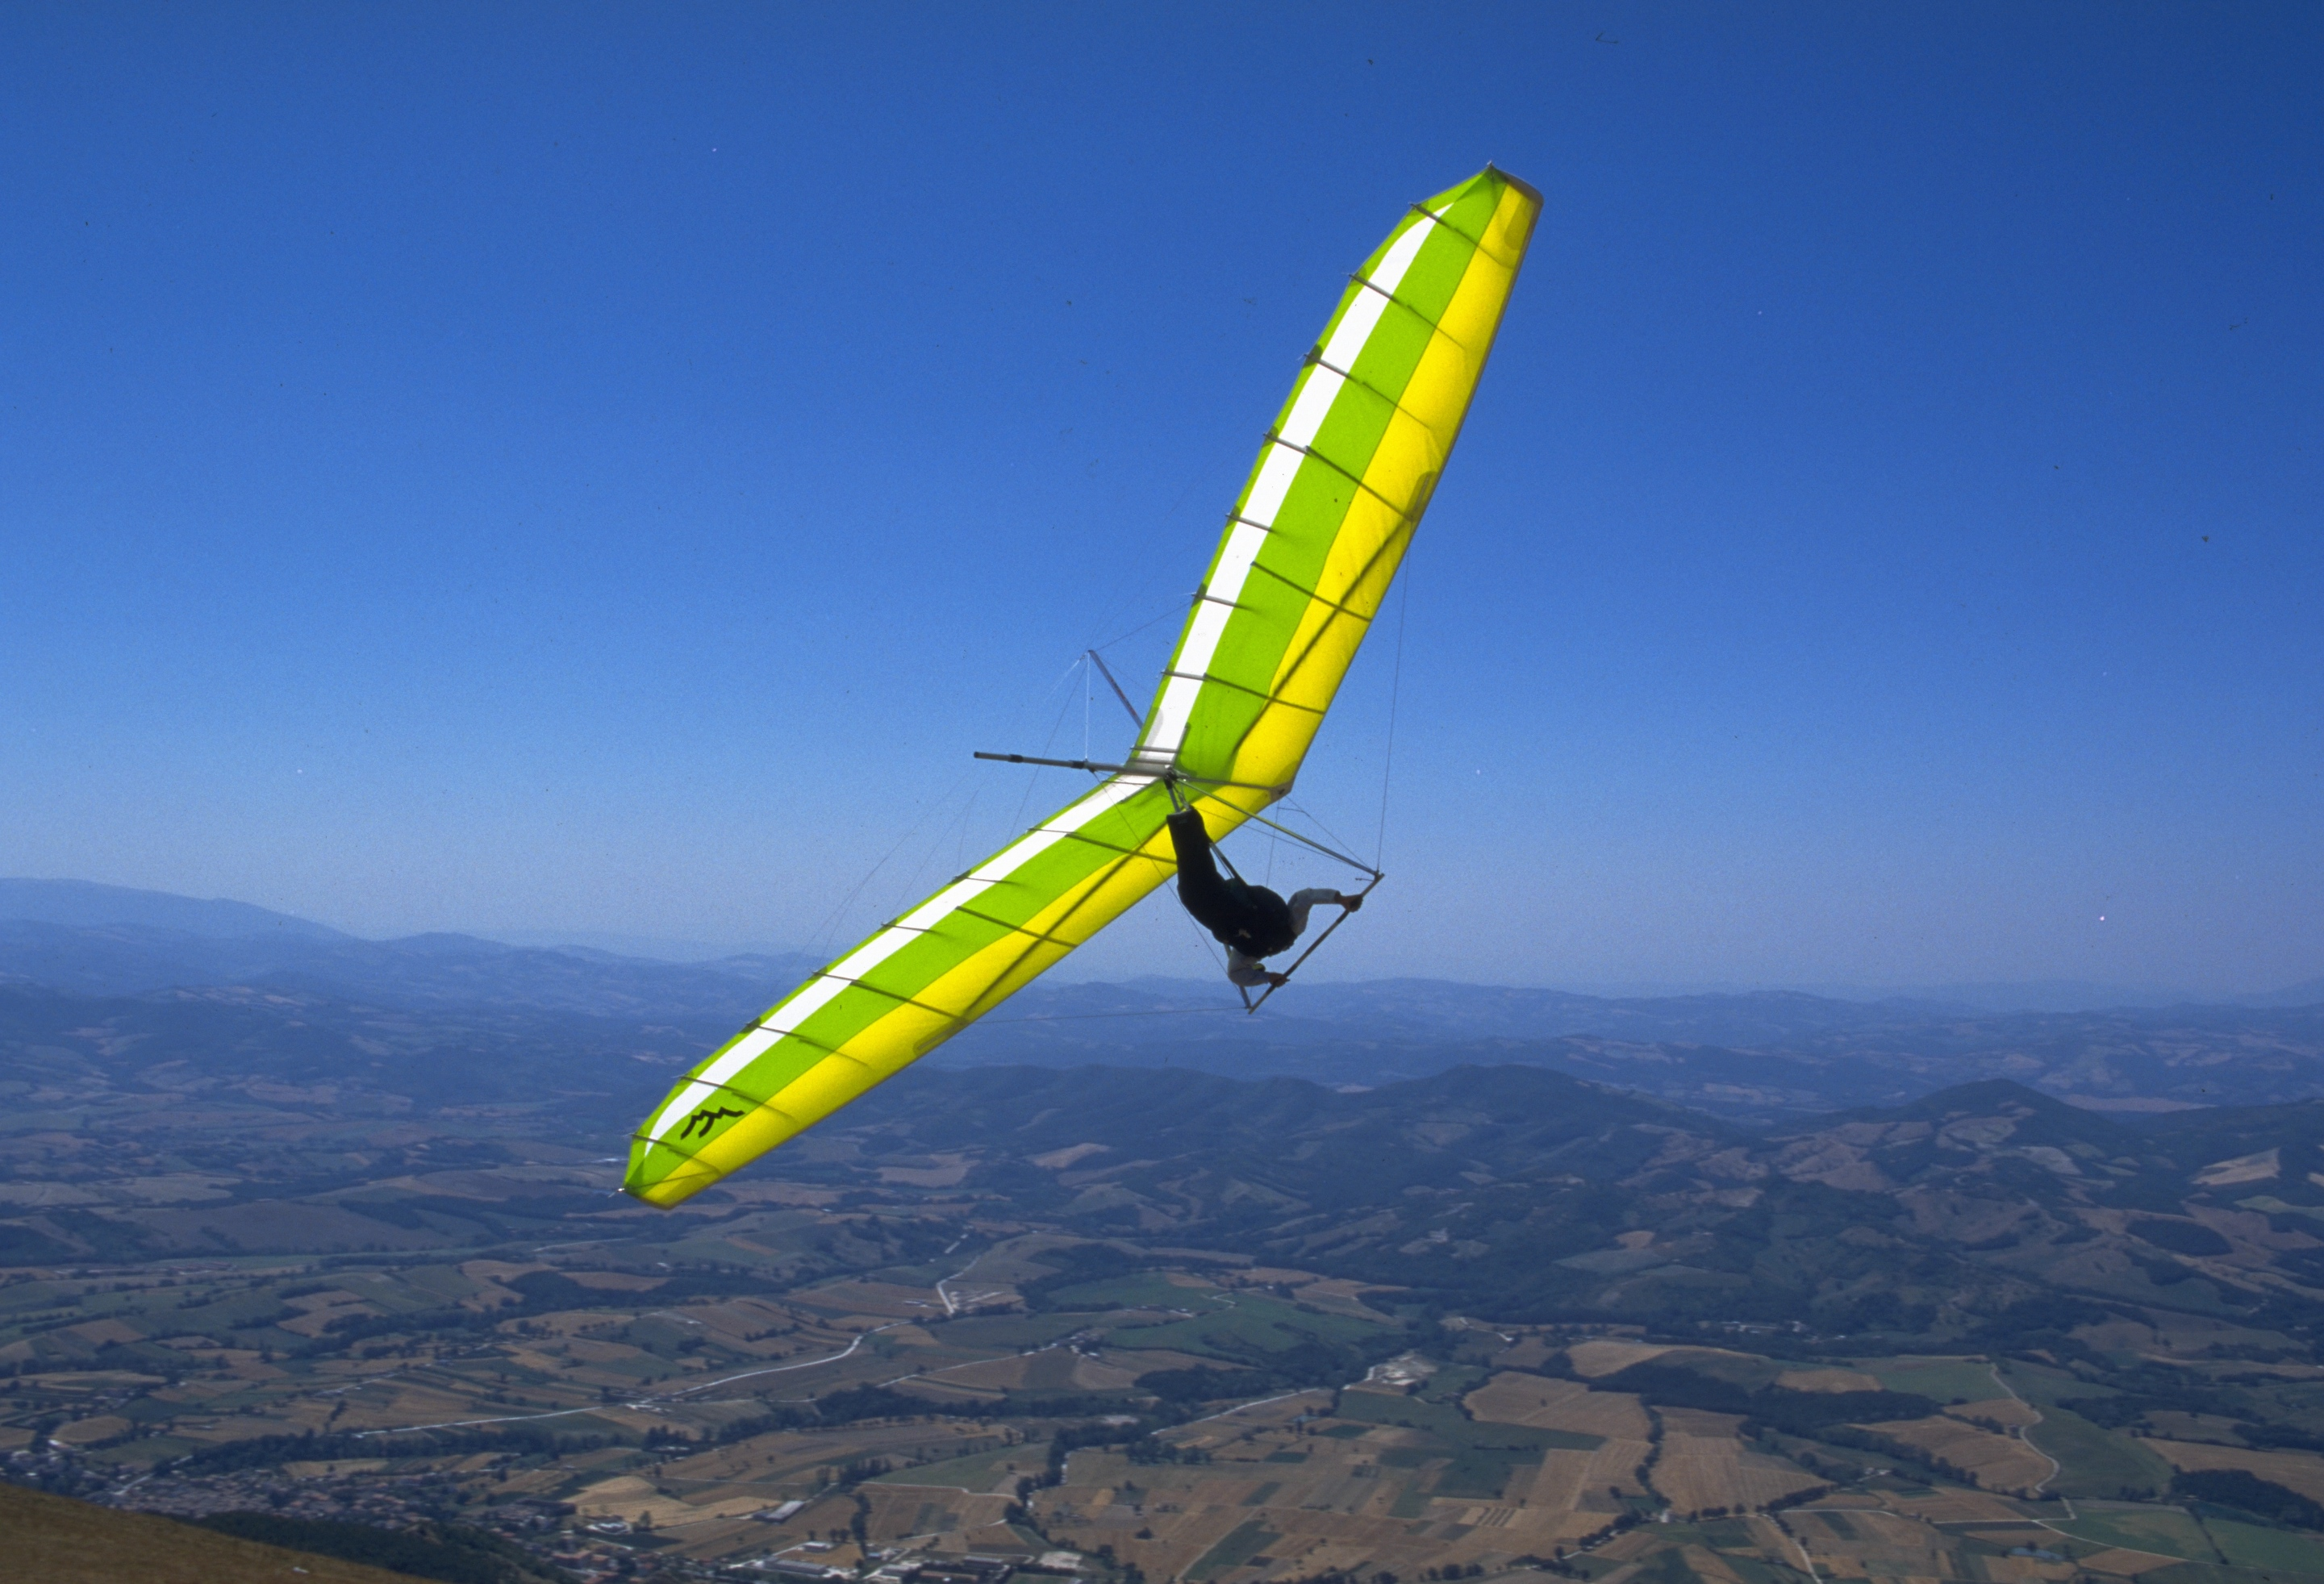 Umbrian skies hang gliding